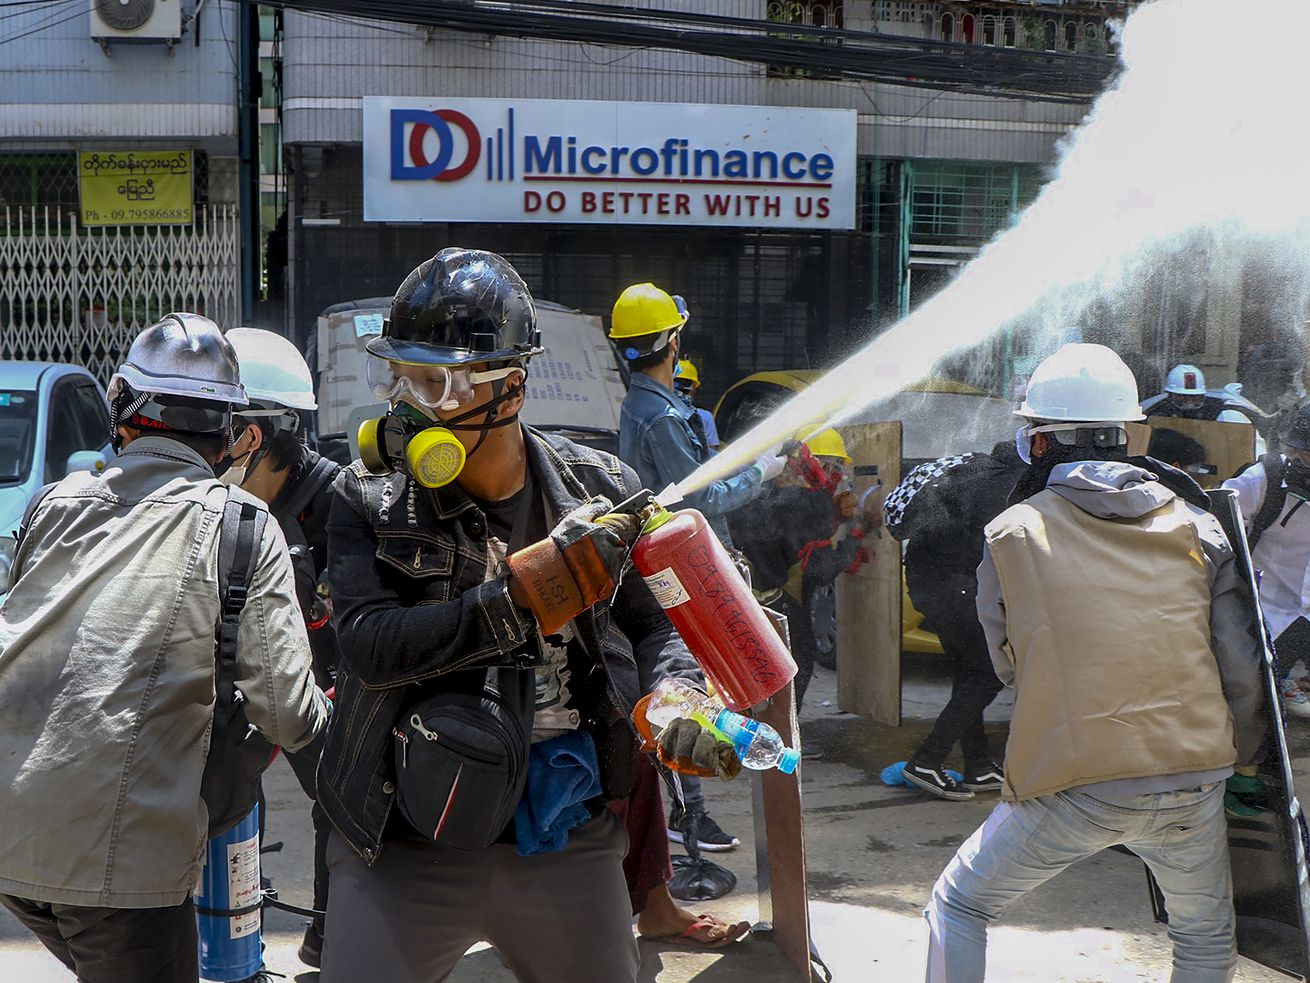 Anti-coup protesters discharge fire extinguishers to counter the impact of the tear gas fired by police during a demonstration in Yangon, Myanmar Thursday, March 4, 2021.